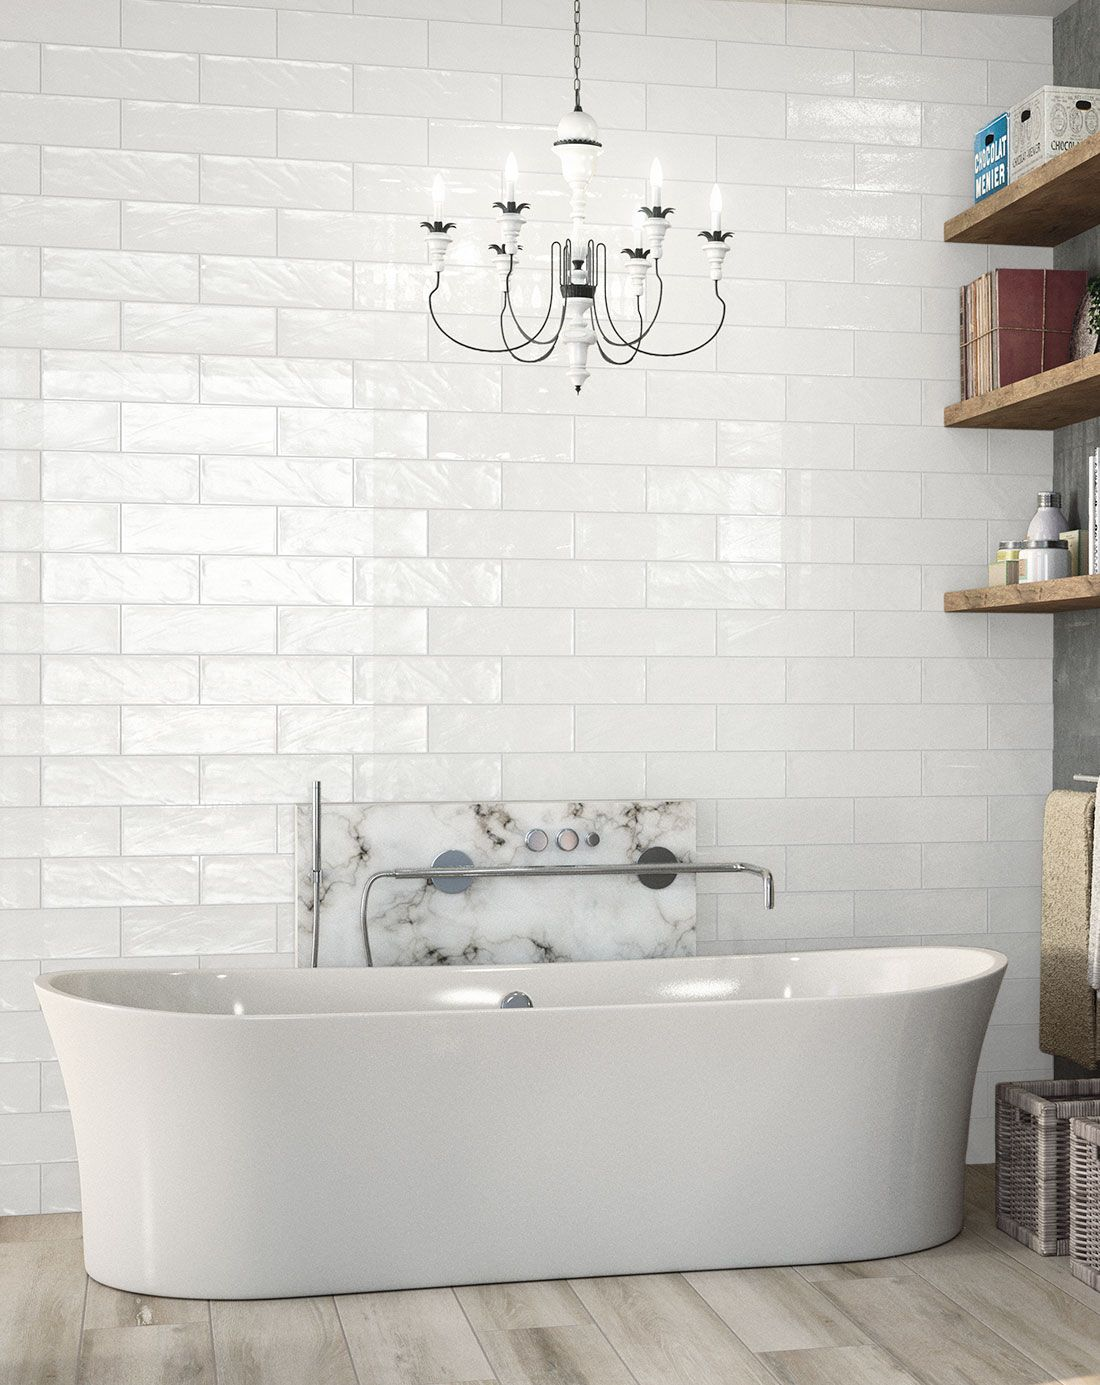 Bulevar Ripple Antique White Ceramic Wall Tile Has A Simple Design